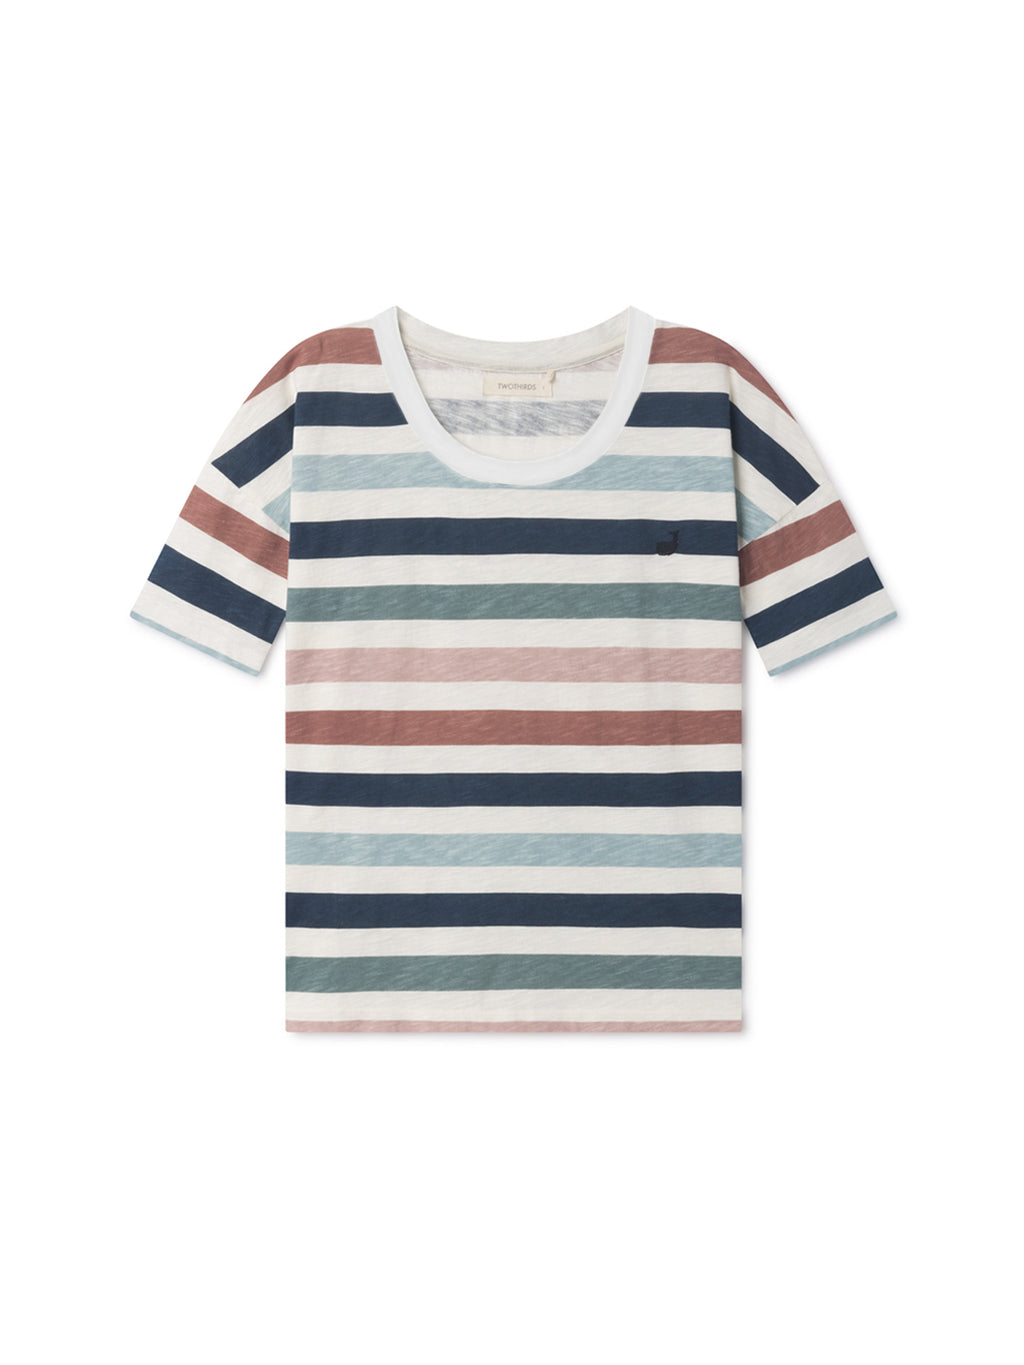 TWOTHIRDS Womens Tee: Vido - Striped front